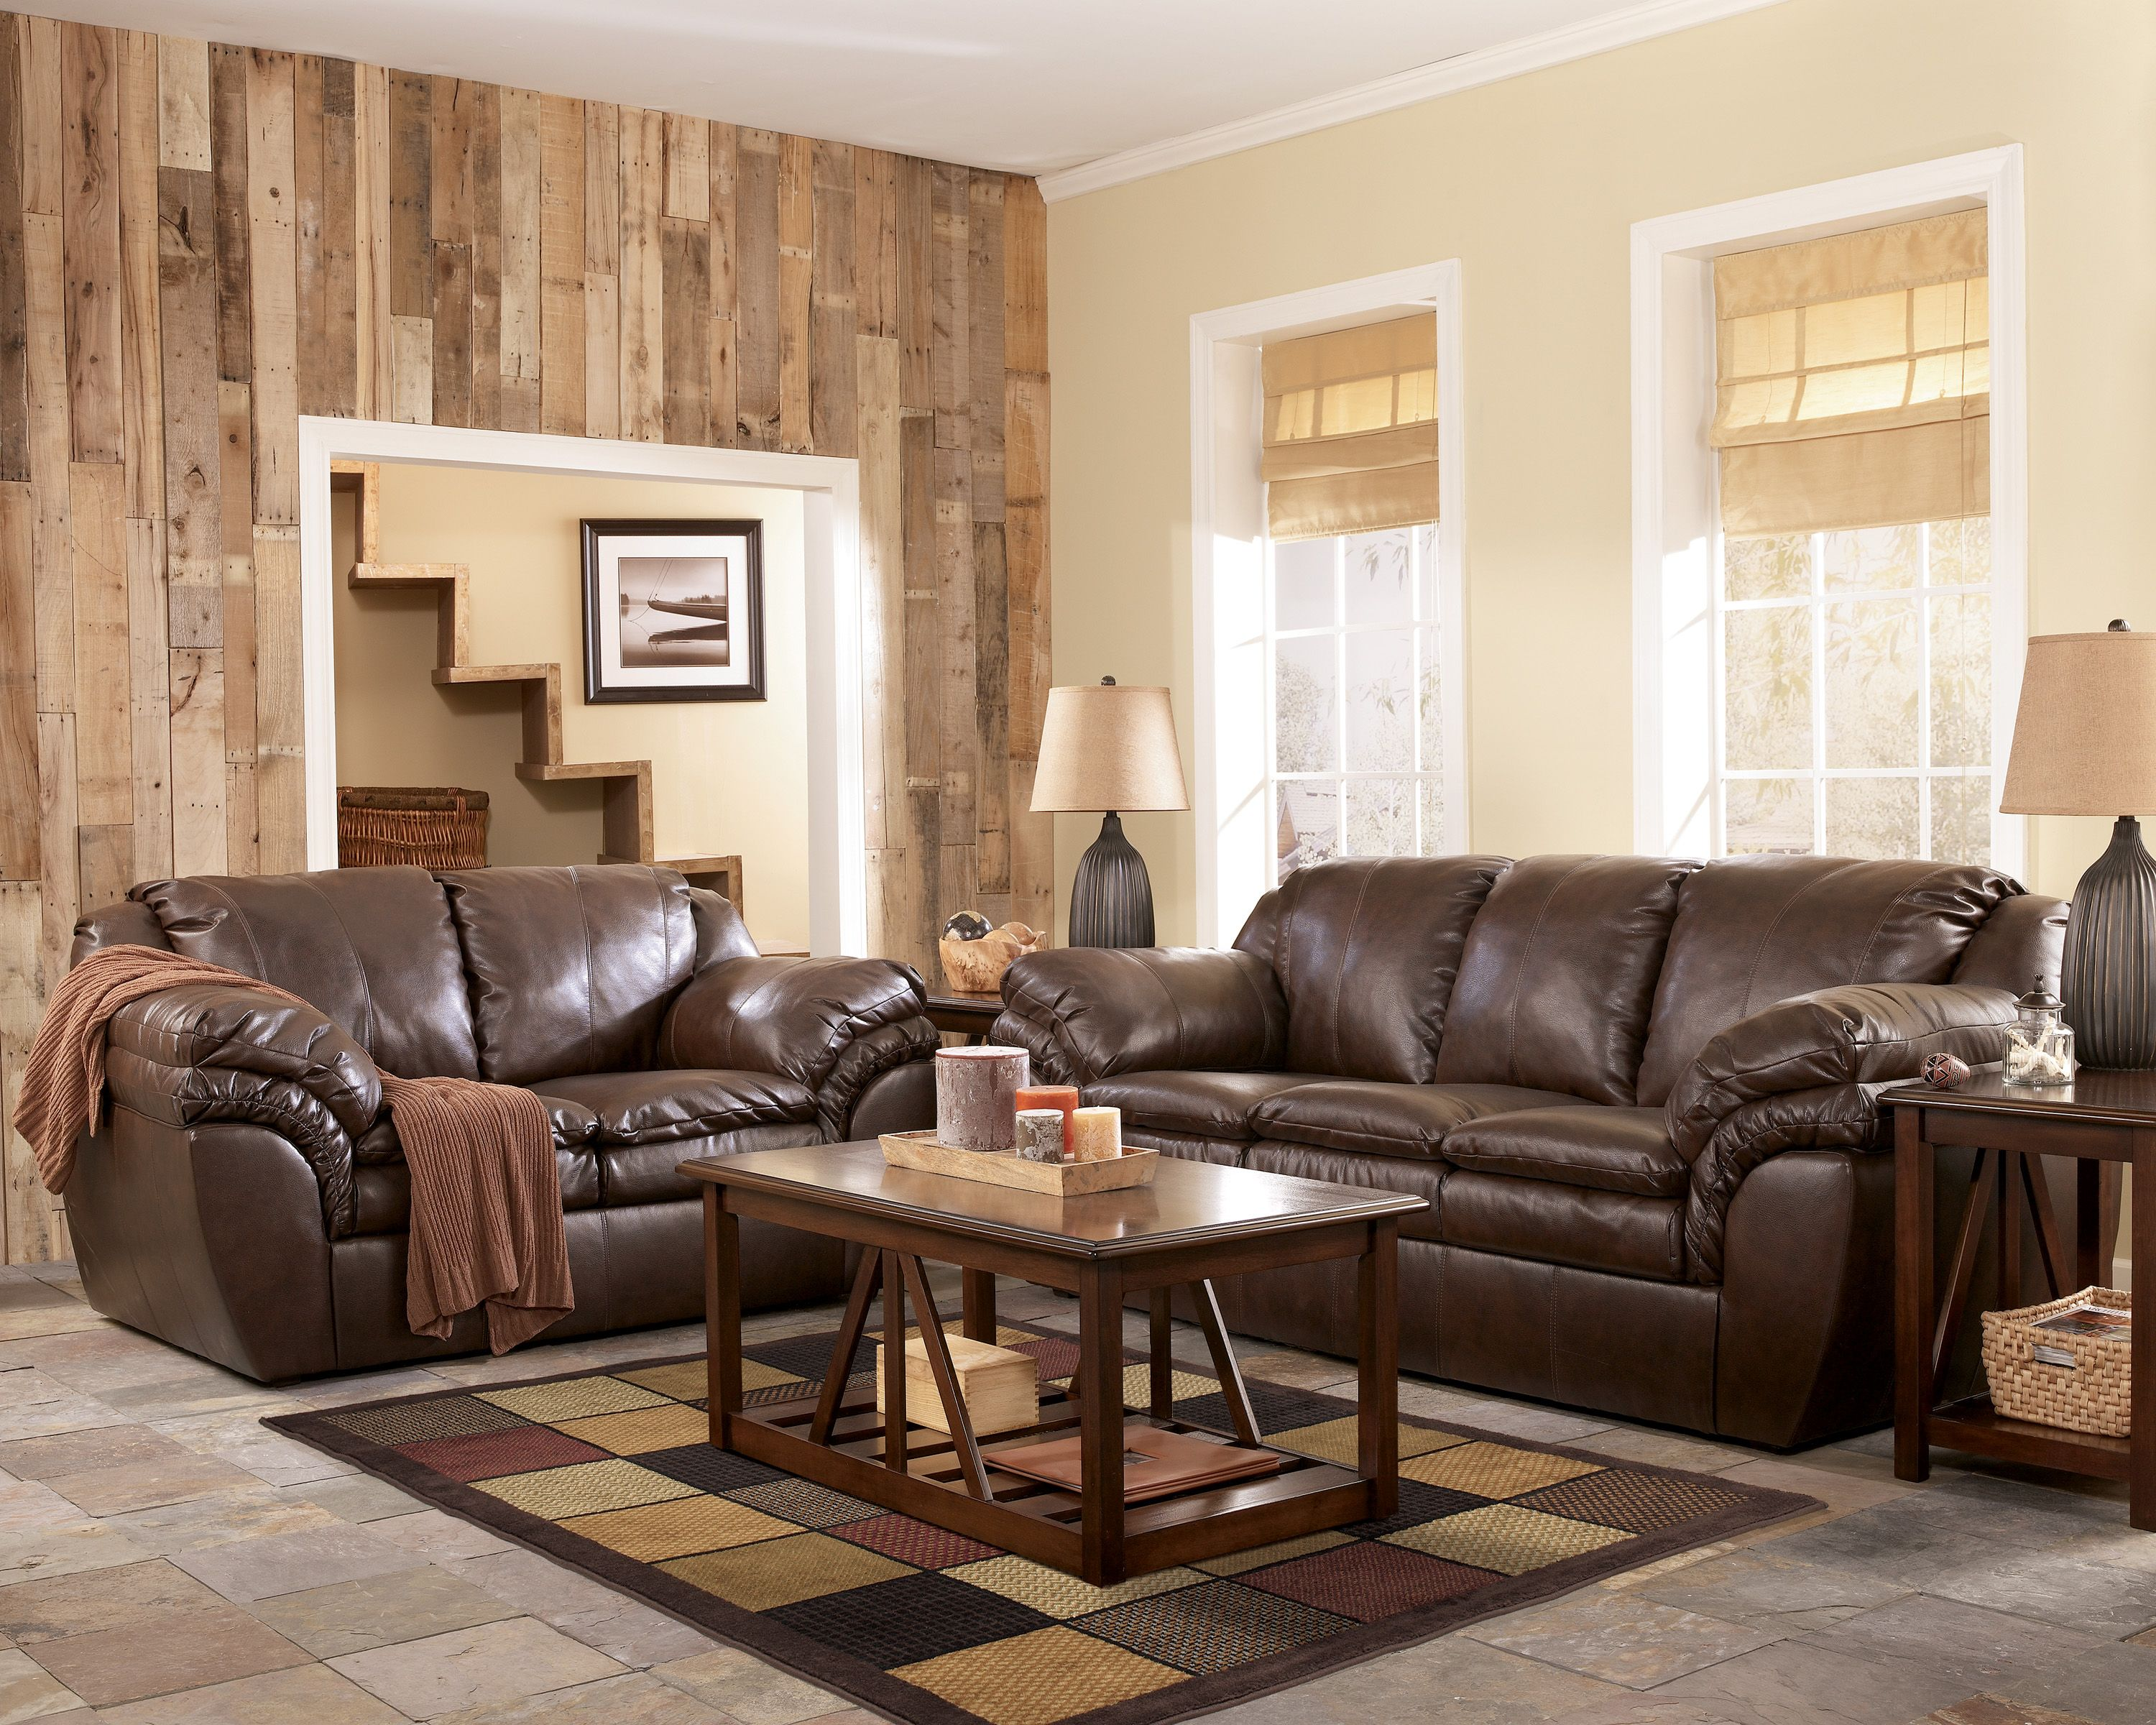 ashleyfurniture  Siganture by Ashley Furniture Sofa Set